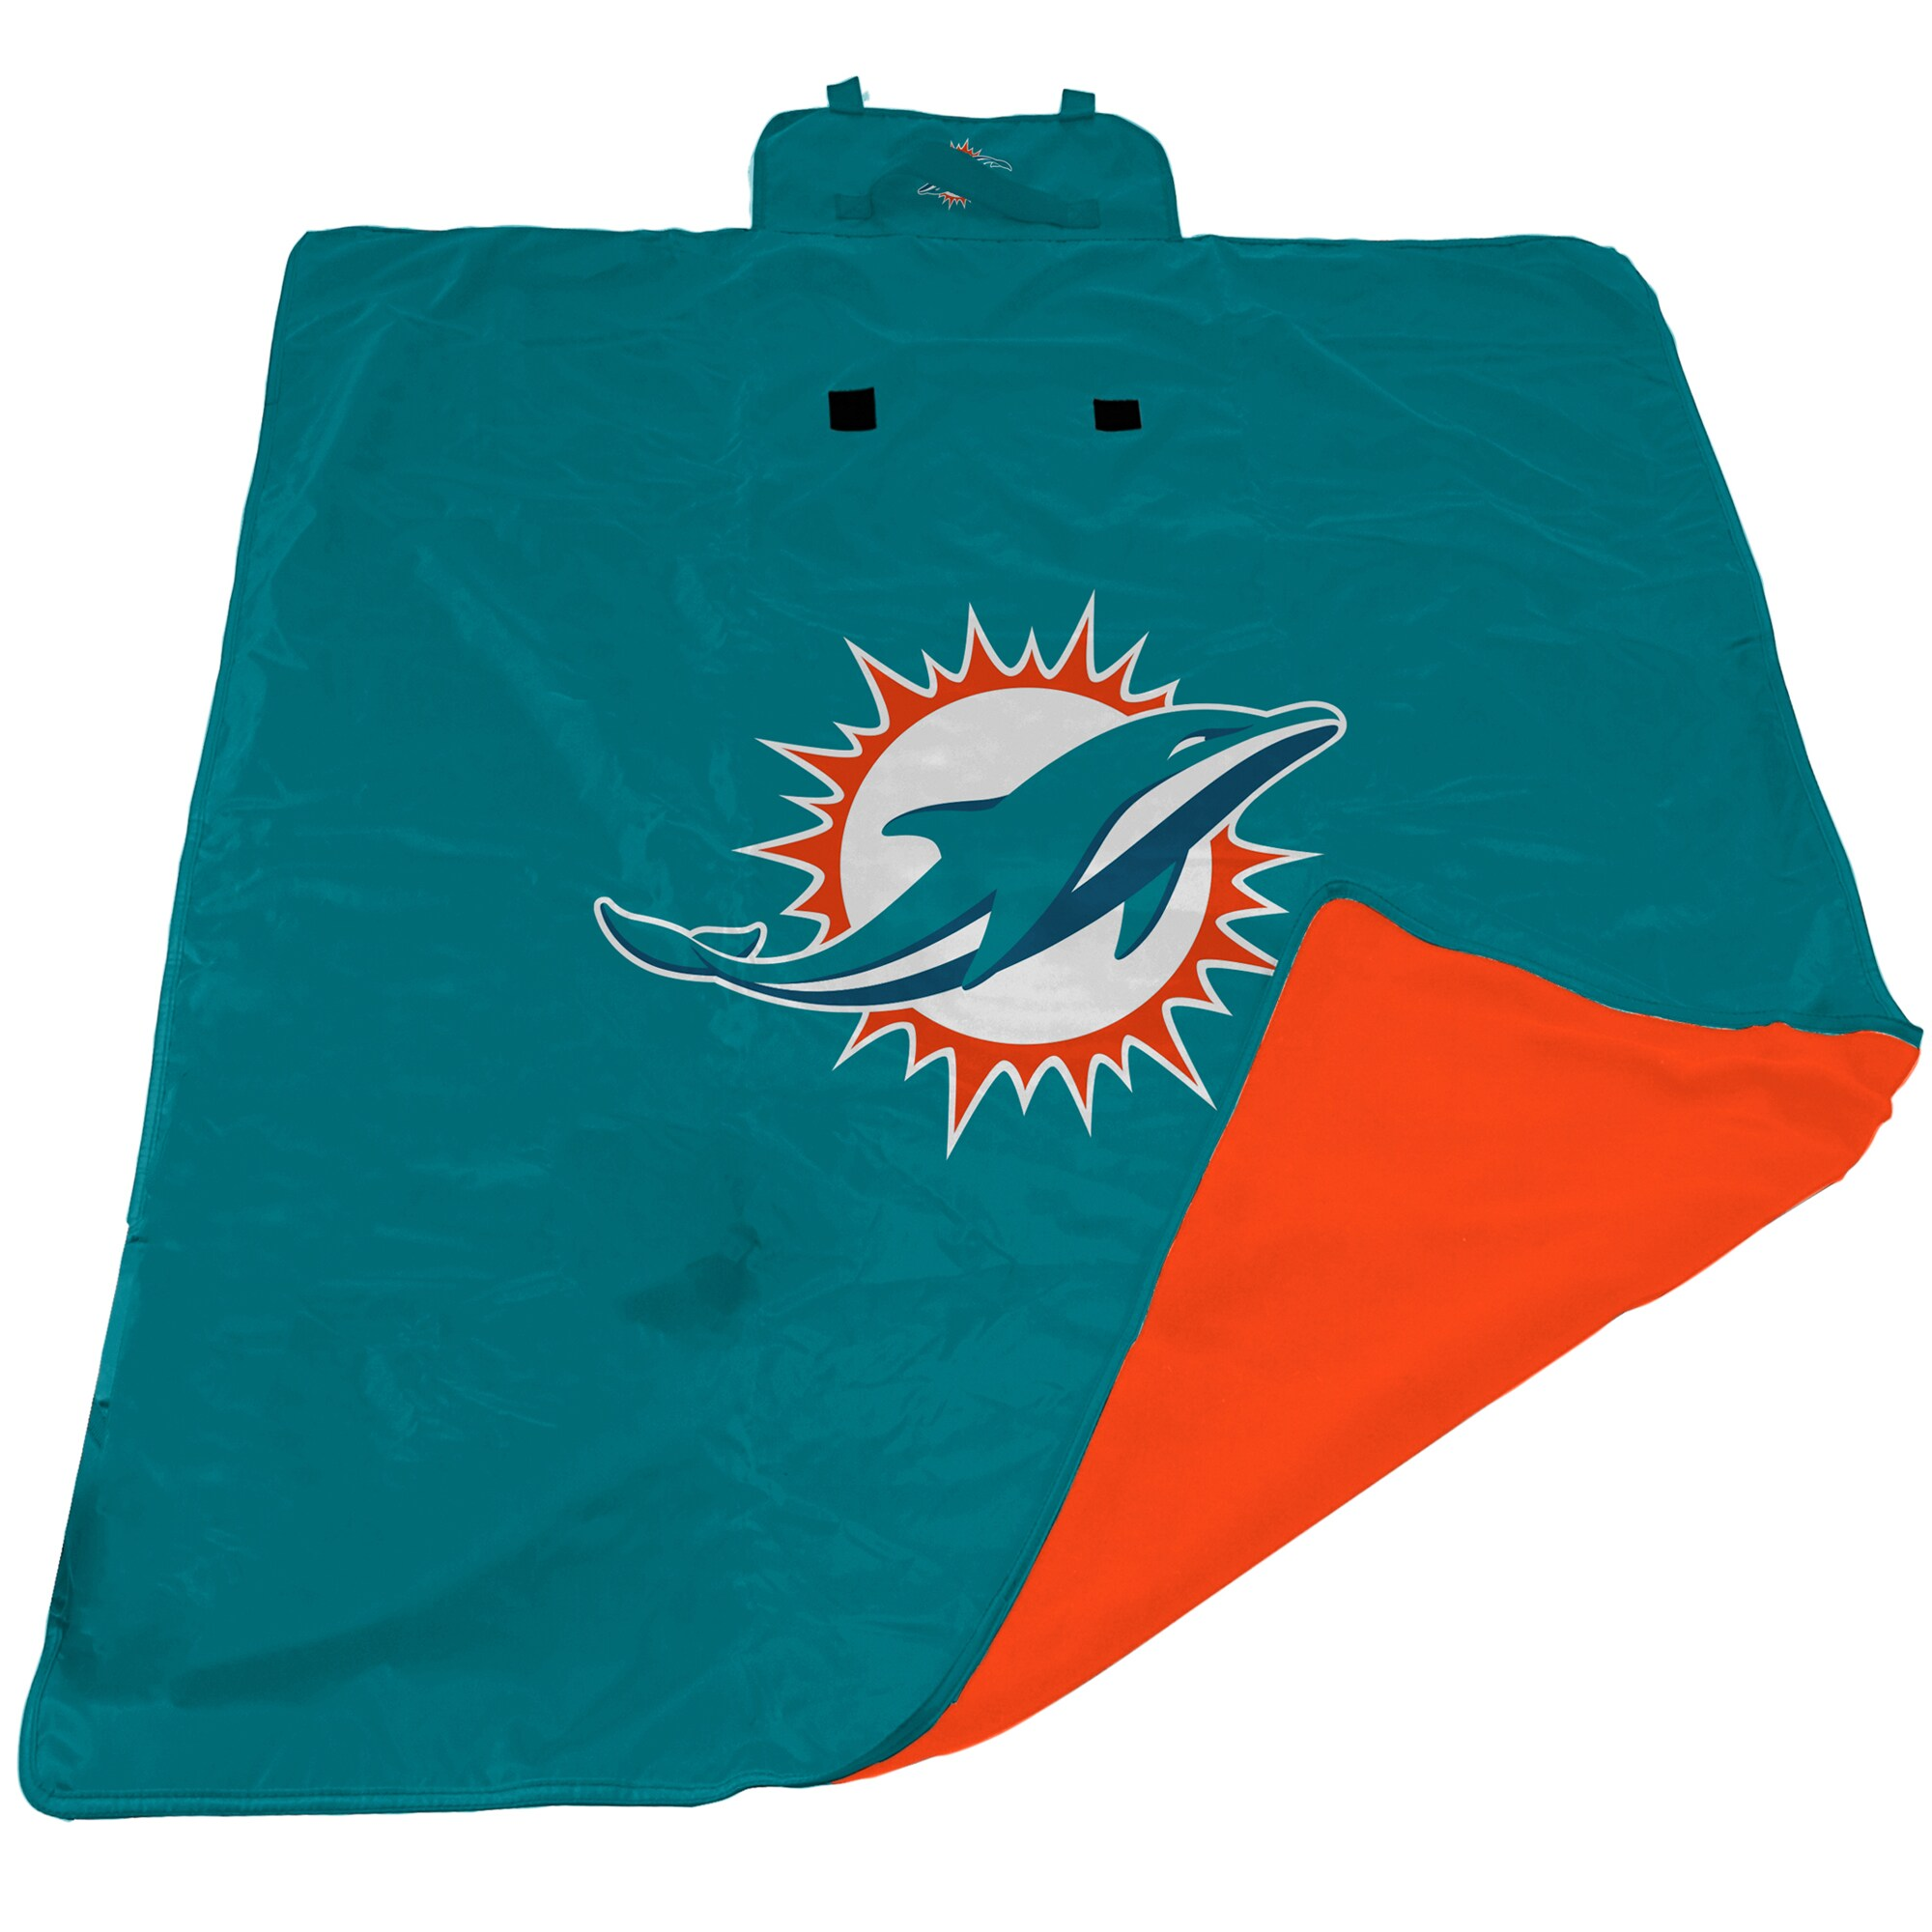 Miami Dolphins 60'' x 80'' All-Weather XL Outdoor Blanket - Aqua